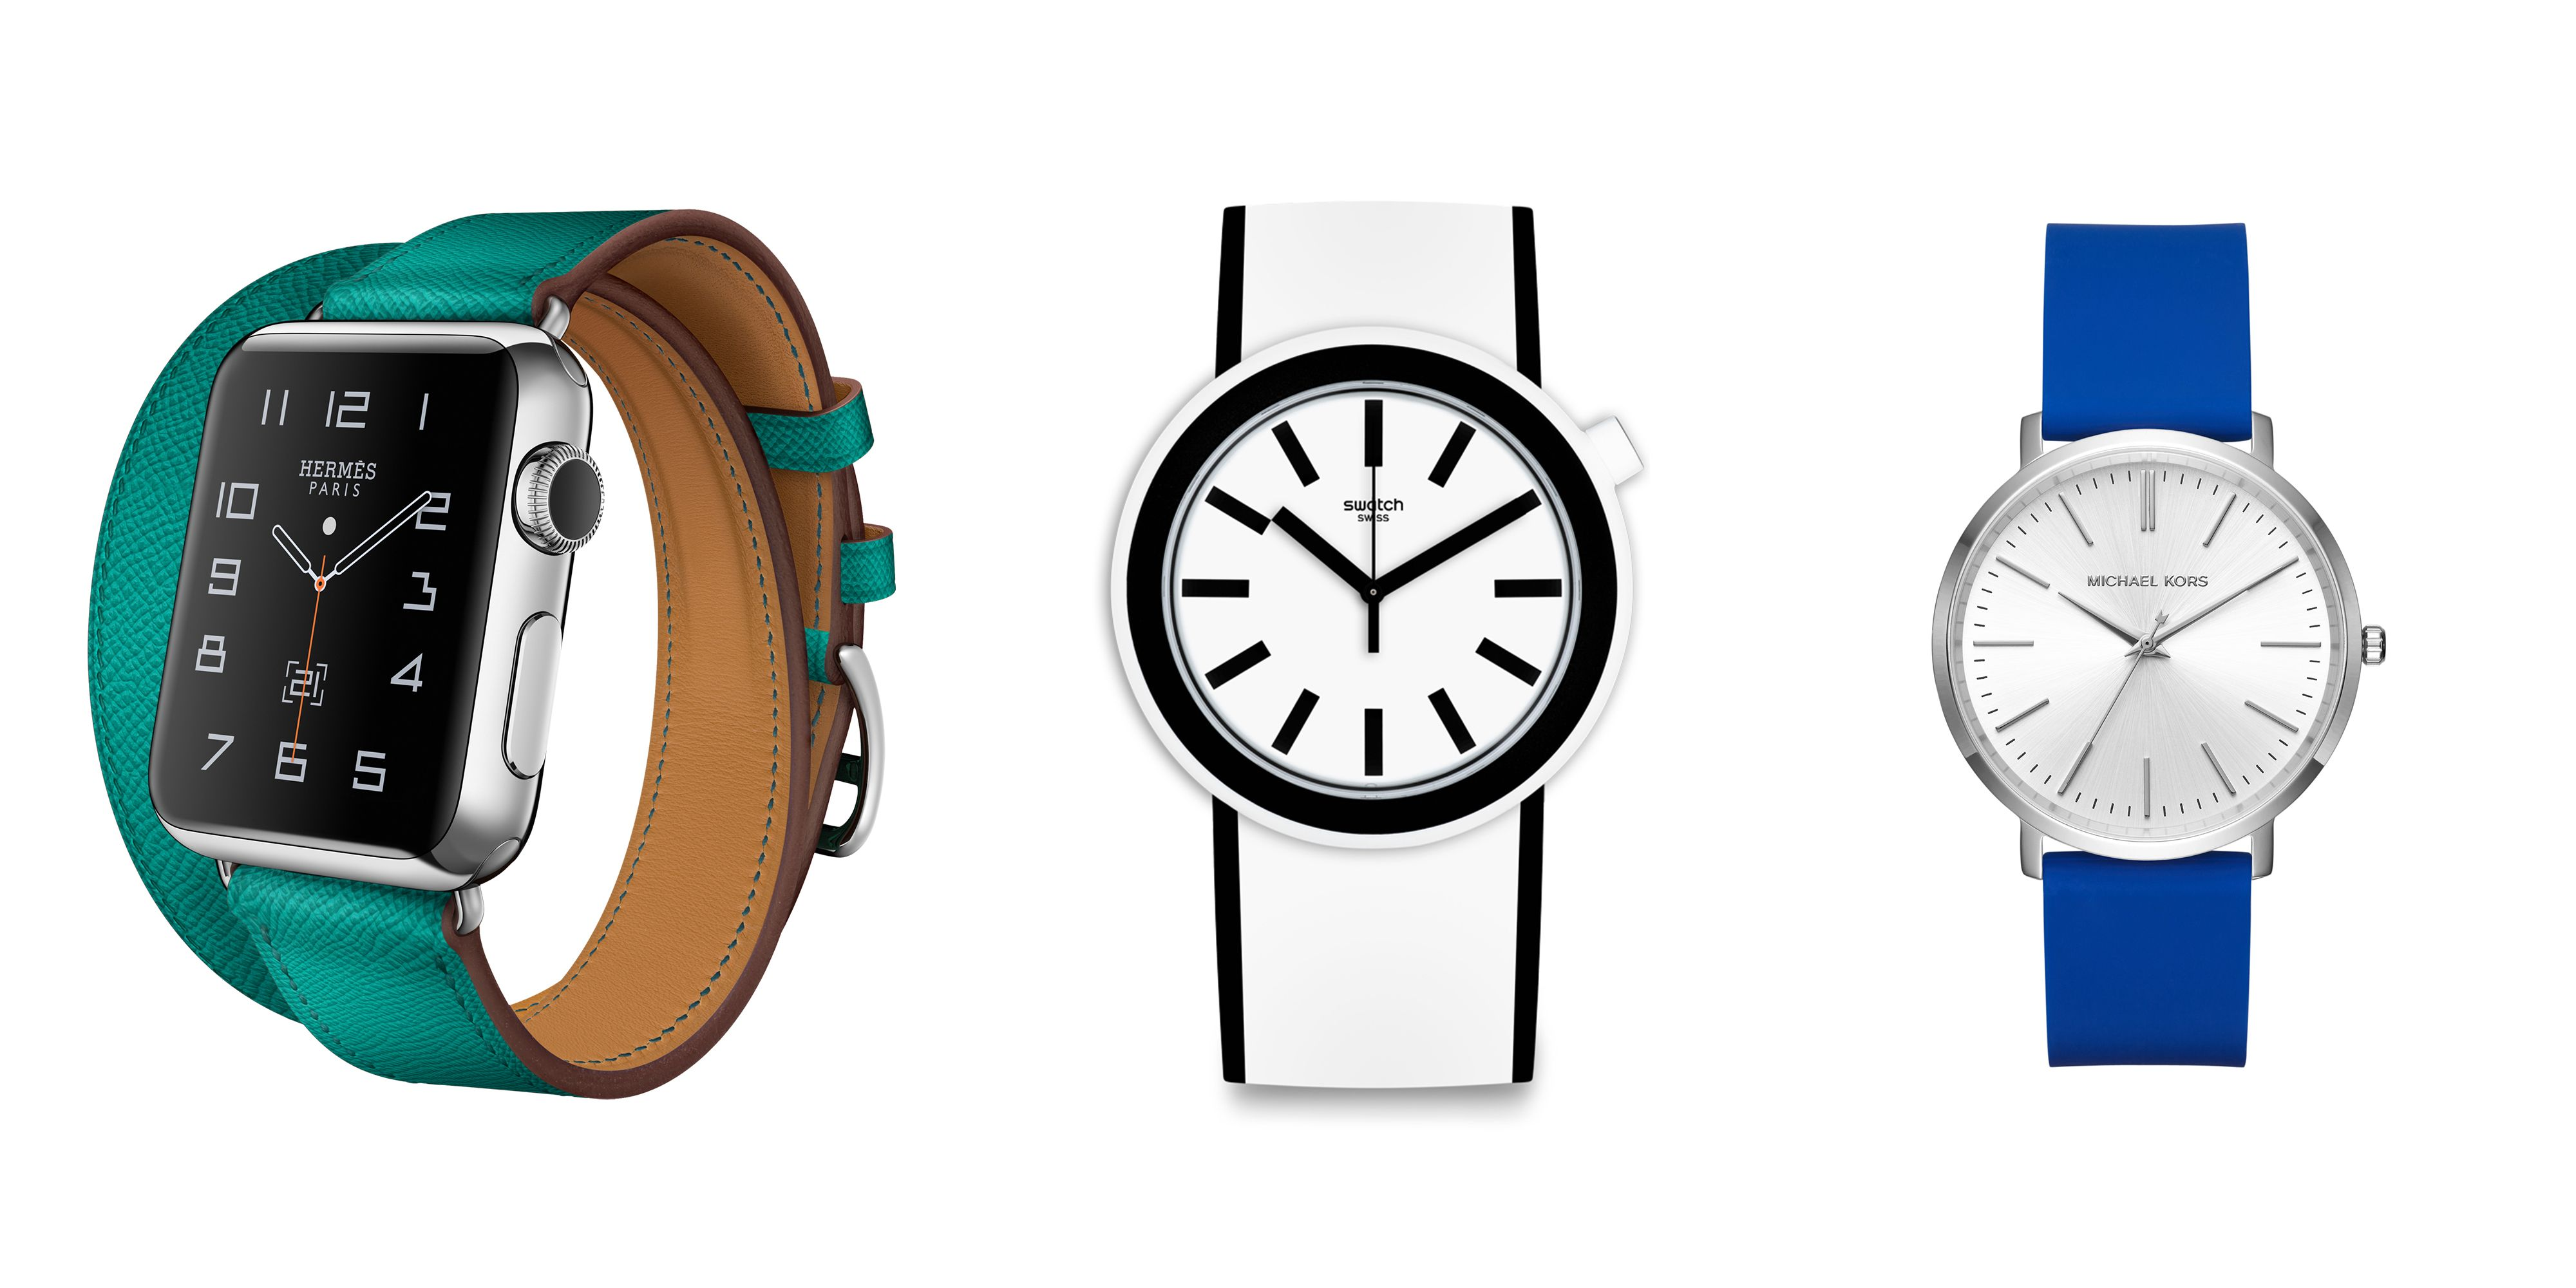 dials launches wood summer with cool original watch design watches handcrafted large dial grain